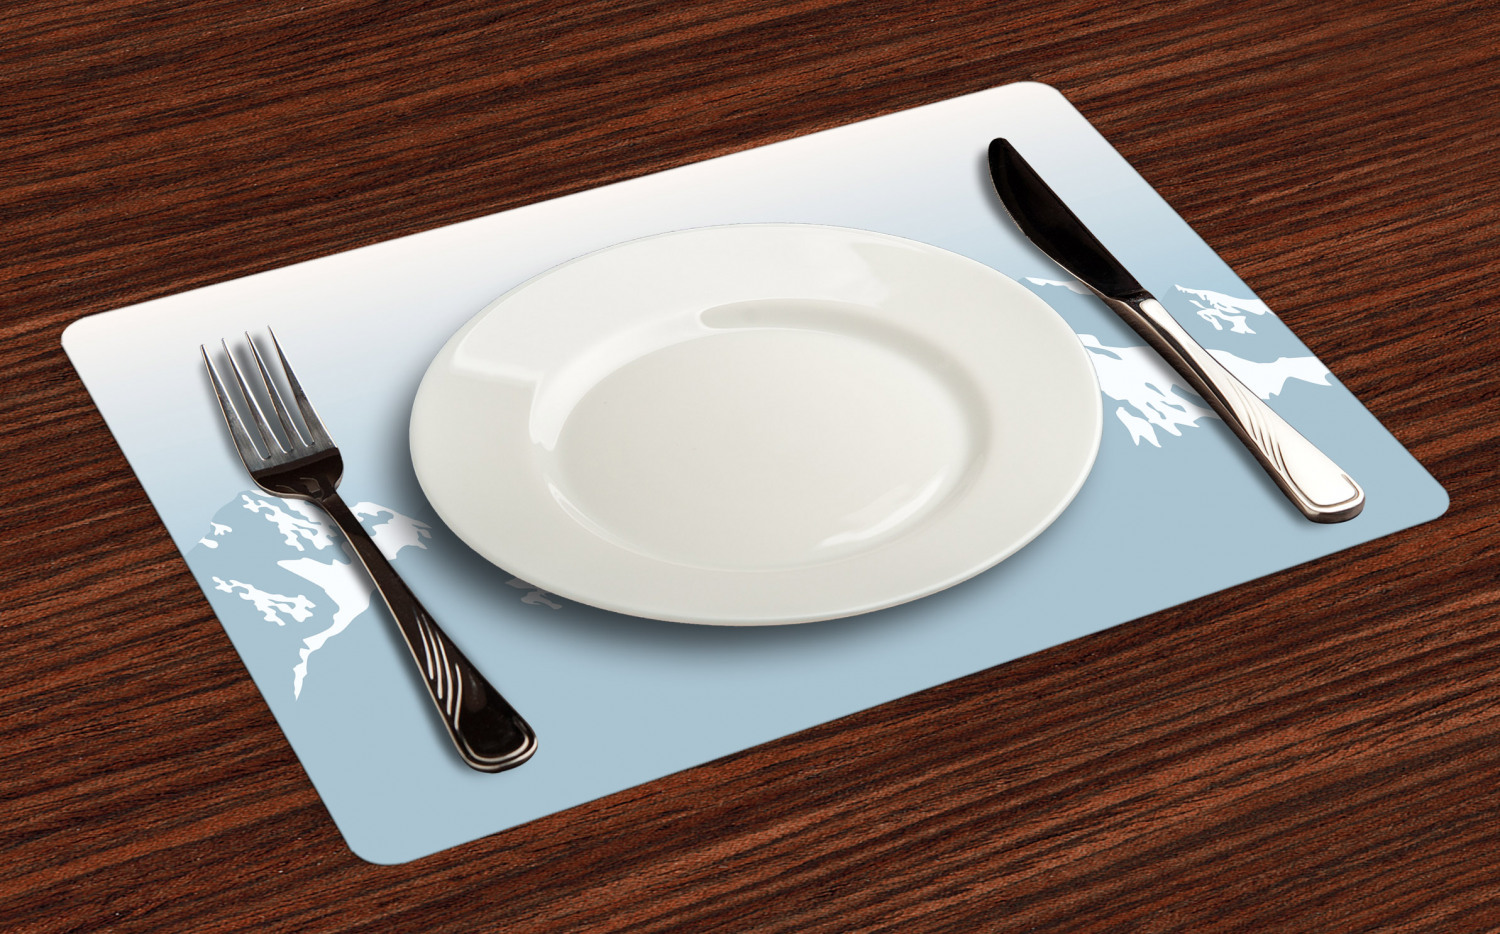 Ambesonne-Fabric-Place-Mats-Set-of-4-Placemats-for-Dining-Room-and-Kitchen-Table thumbnail 141